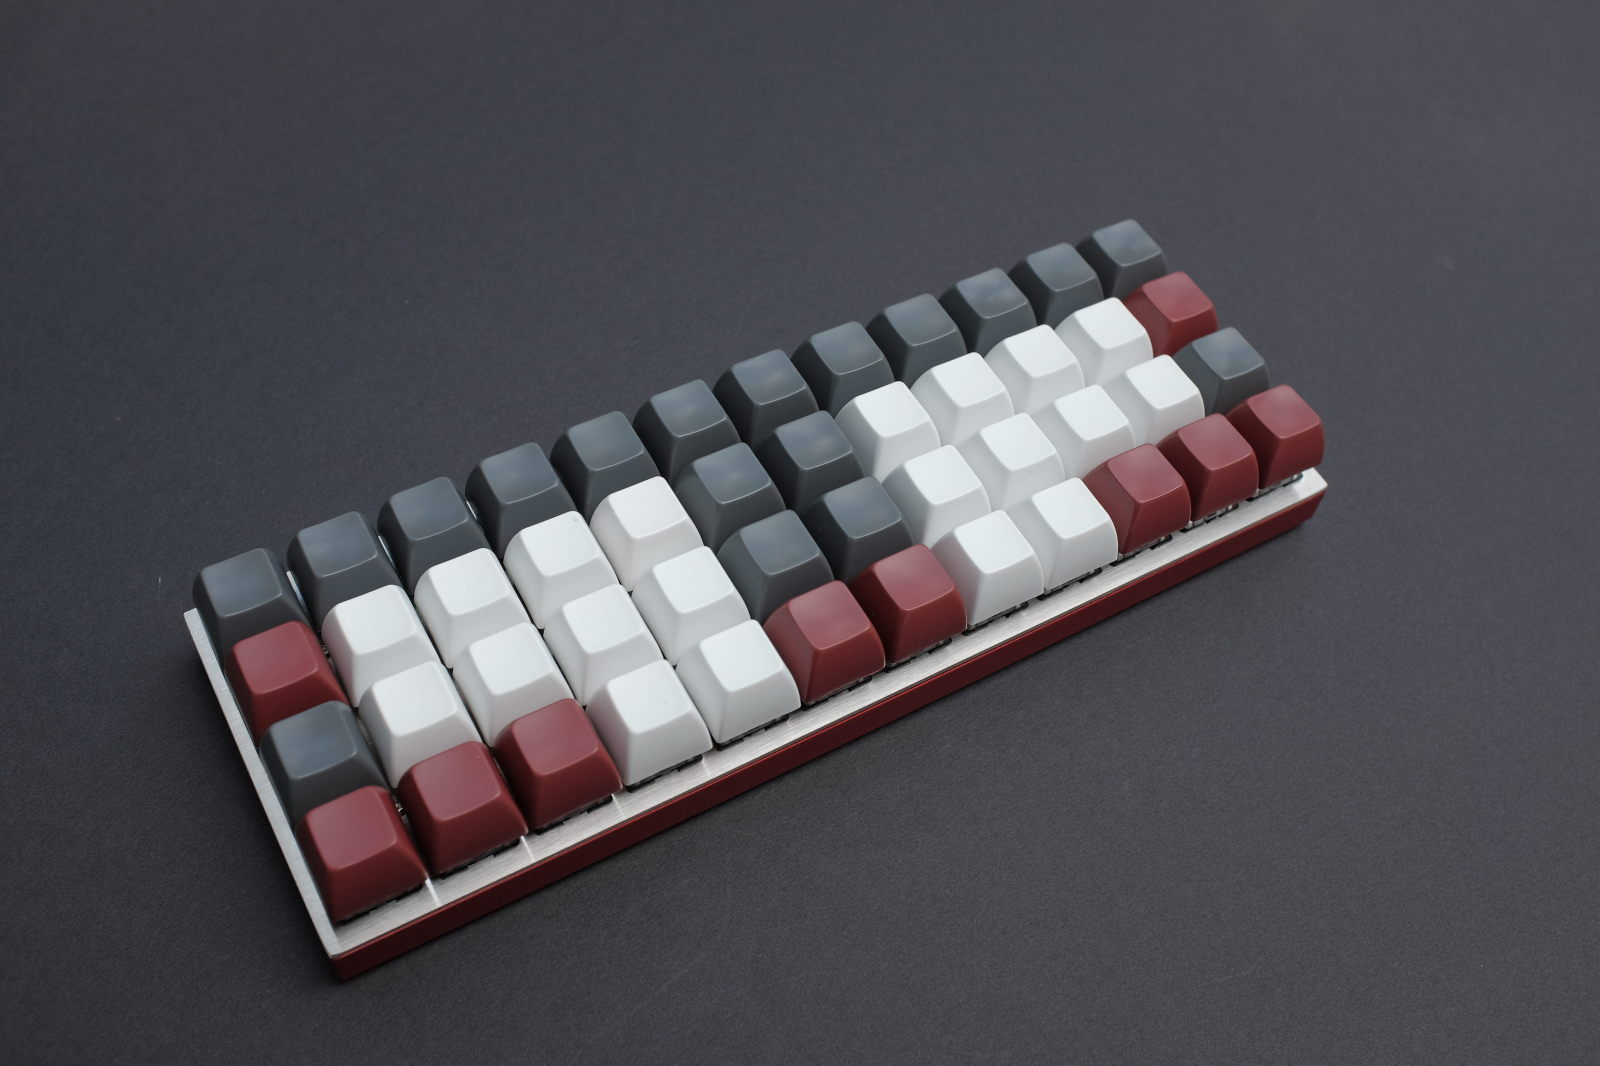 Planck with SA profile keycaps